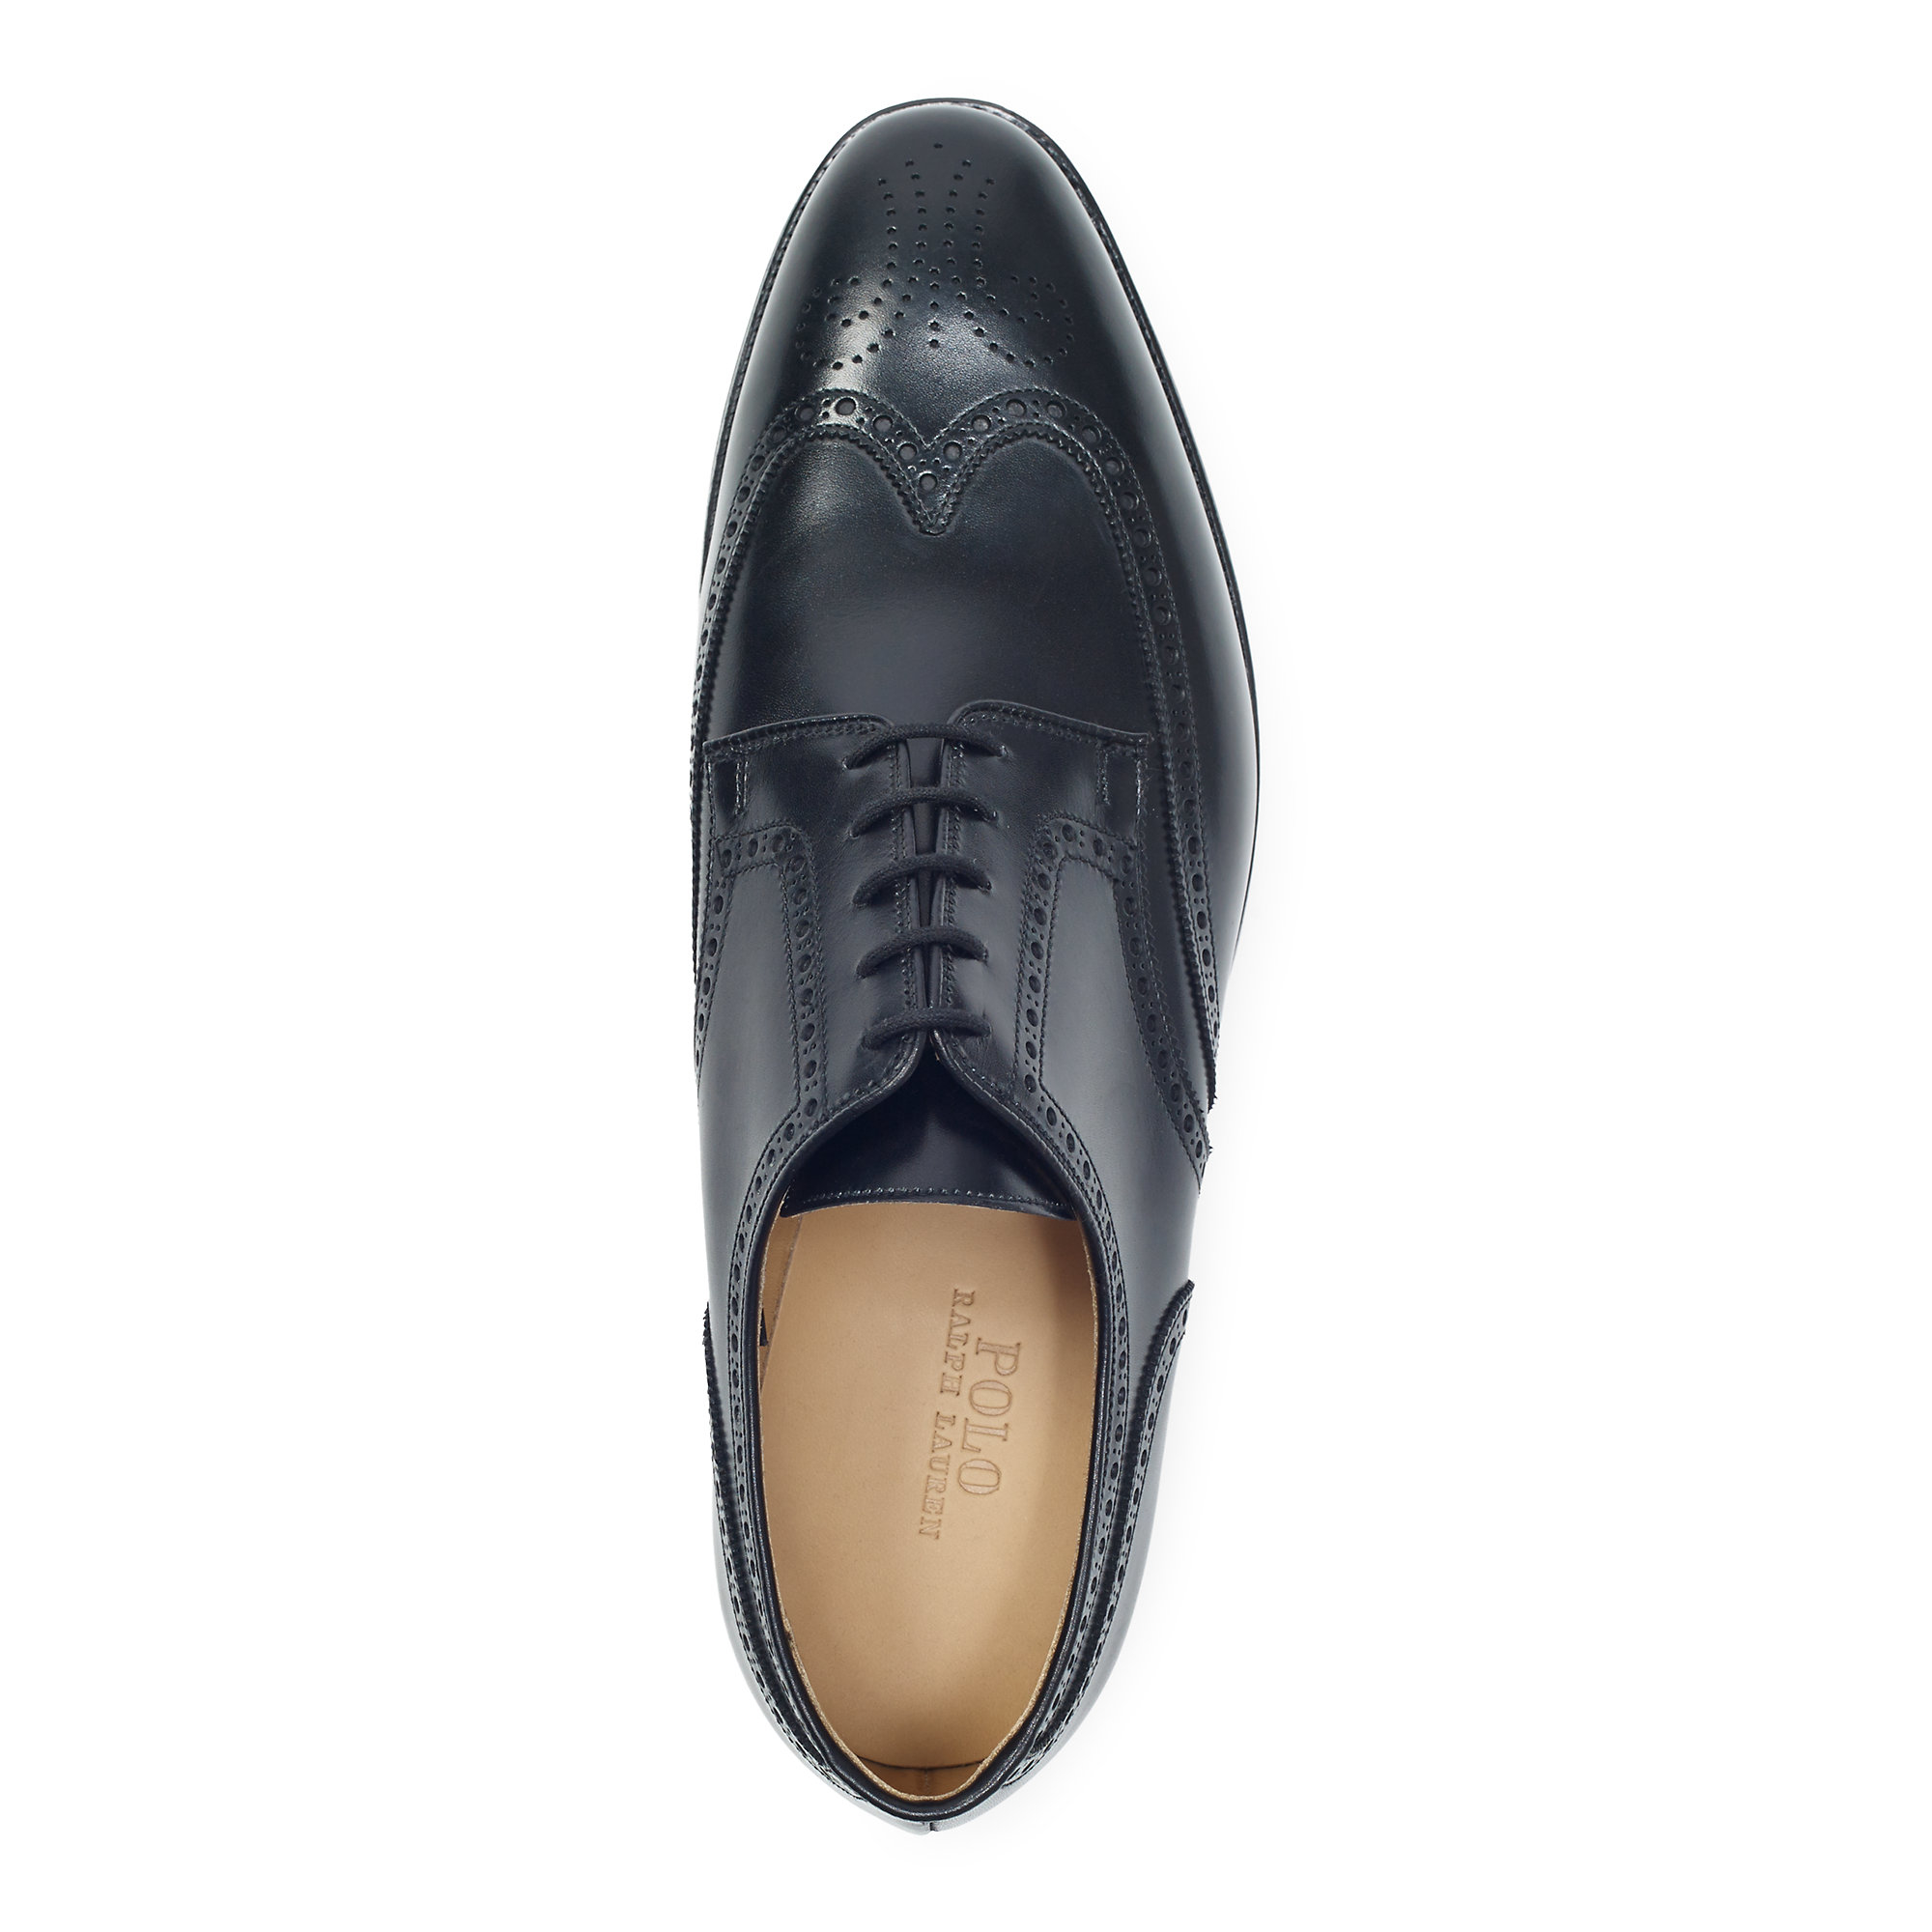 ralph-lauren-black-rossendale-calfskin-brogue-product-2-404125741-normal.jpeg